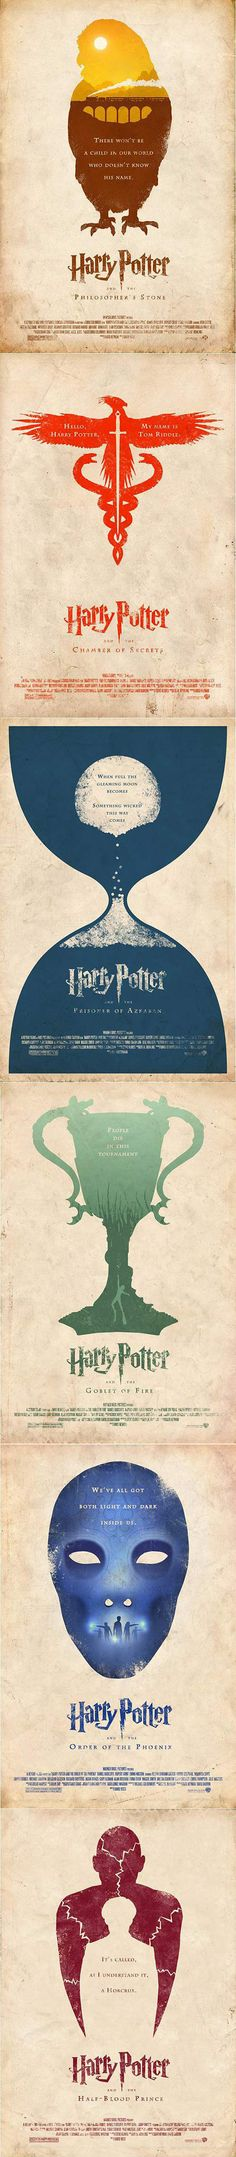 Less is more...and here are some minimalist Harry Potter movie posters.